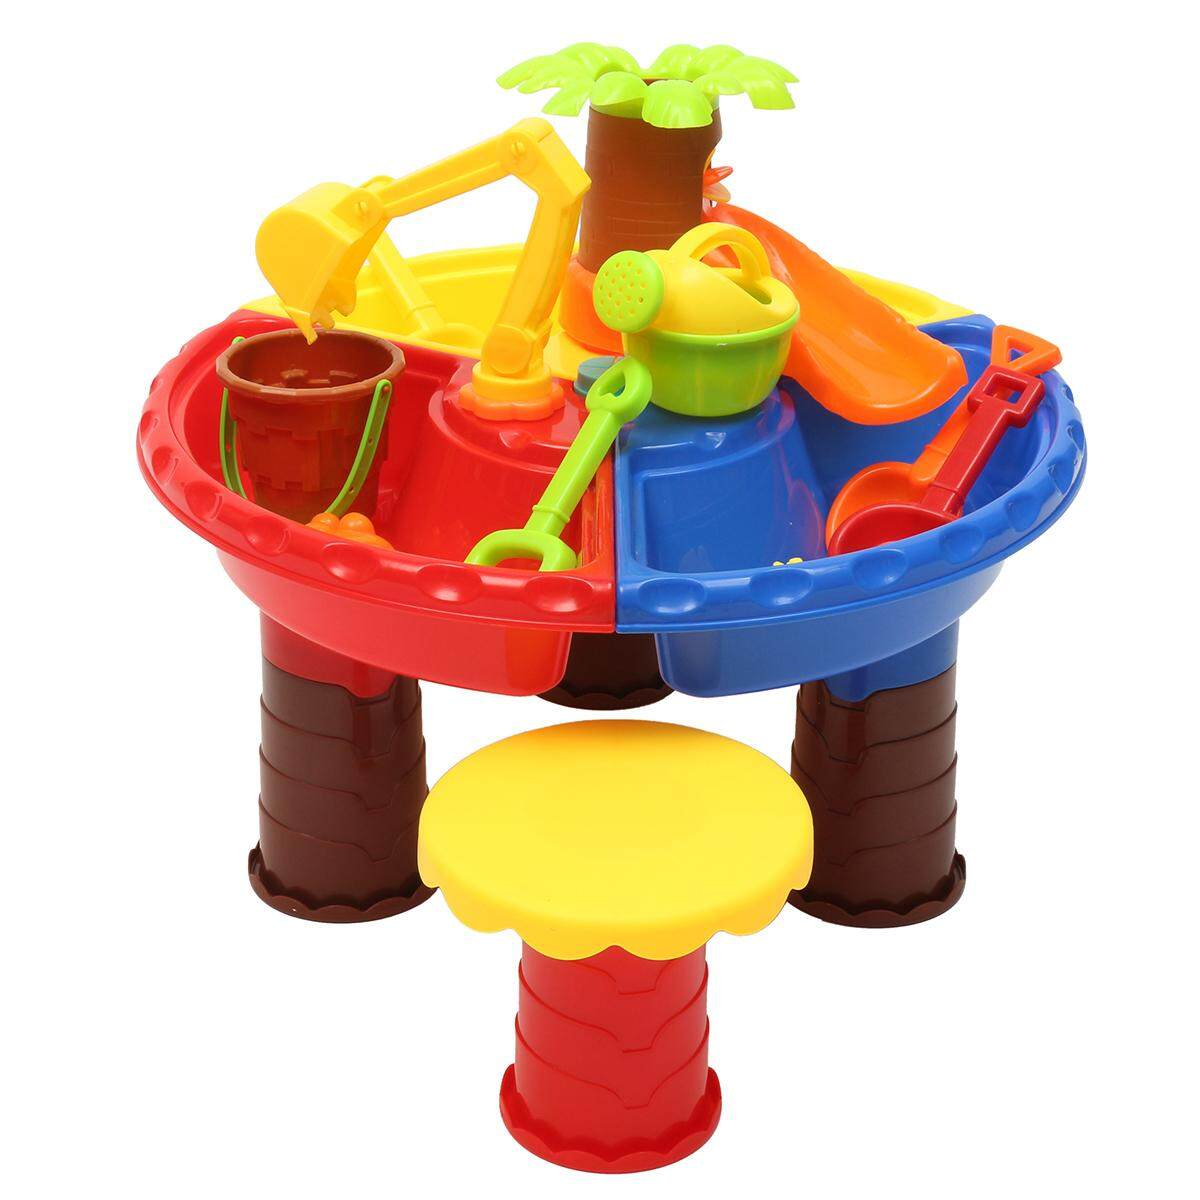 Kids Sand&Water Activity Child Play Table Stool Fun Outdoor Sandpit Toys Set